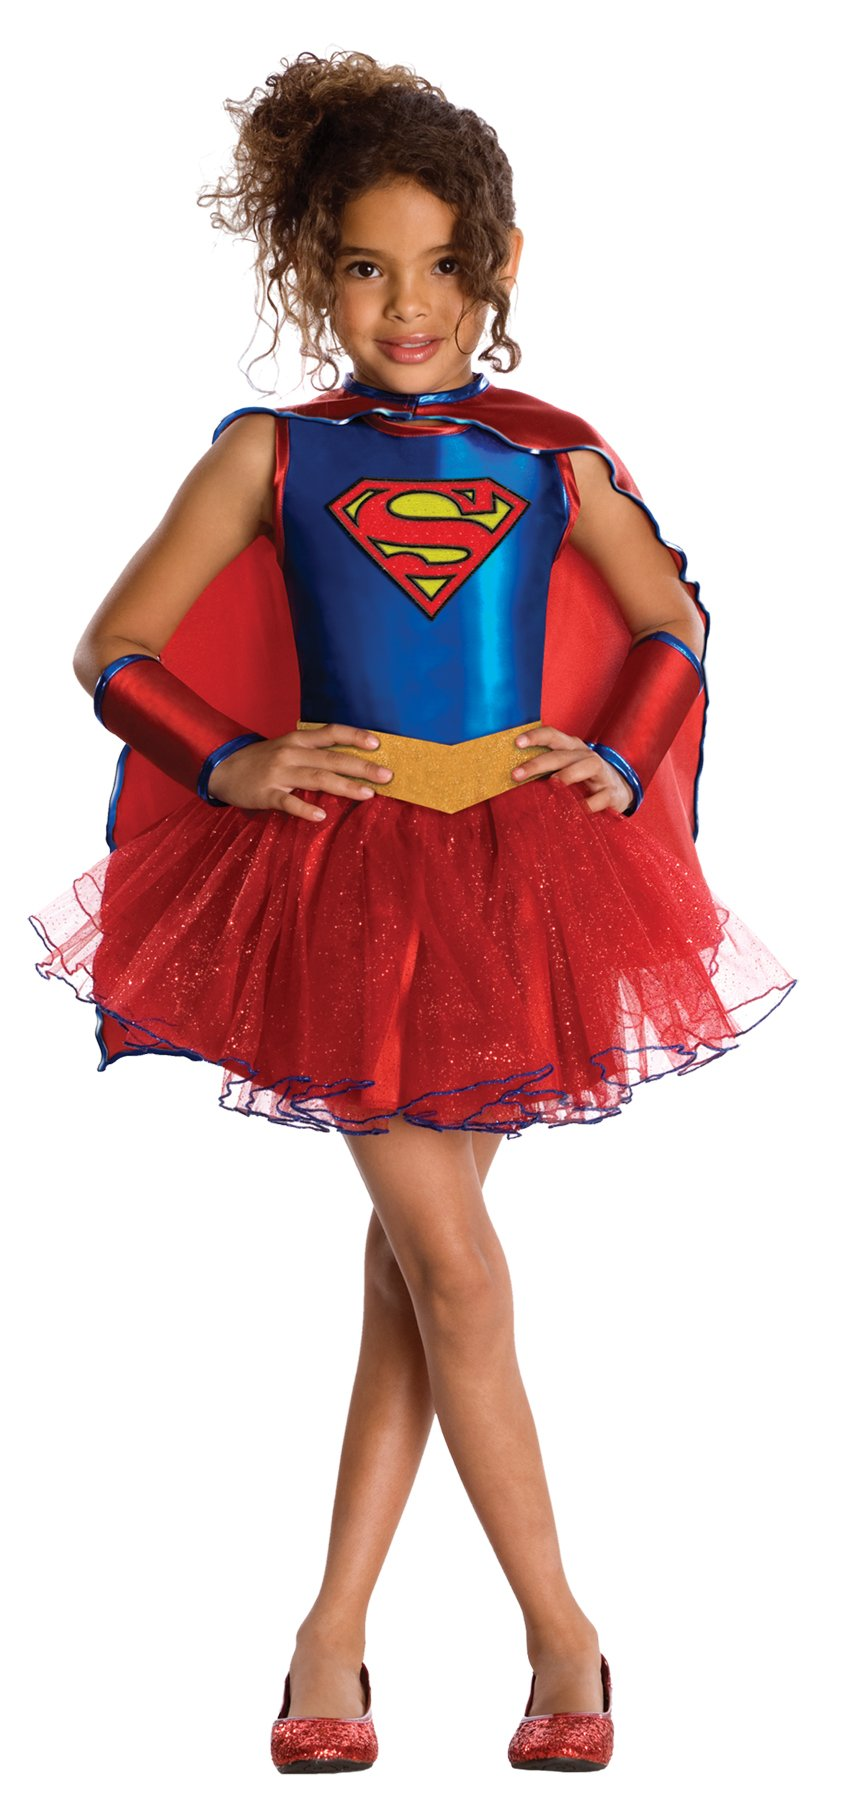 - 715PKv3dllL - Girl's Dc Comics Supergirl Outfit Toddler Child Tutu Dress Halloween Costume